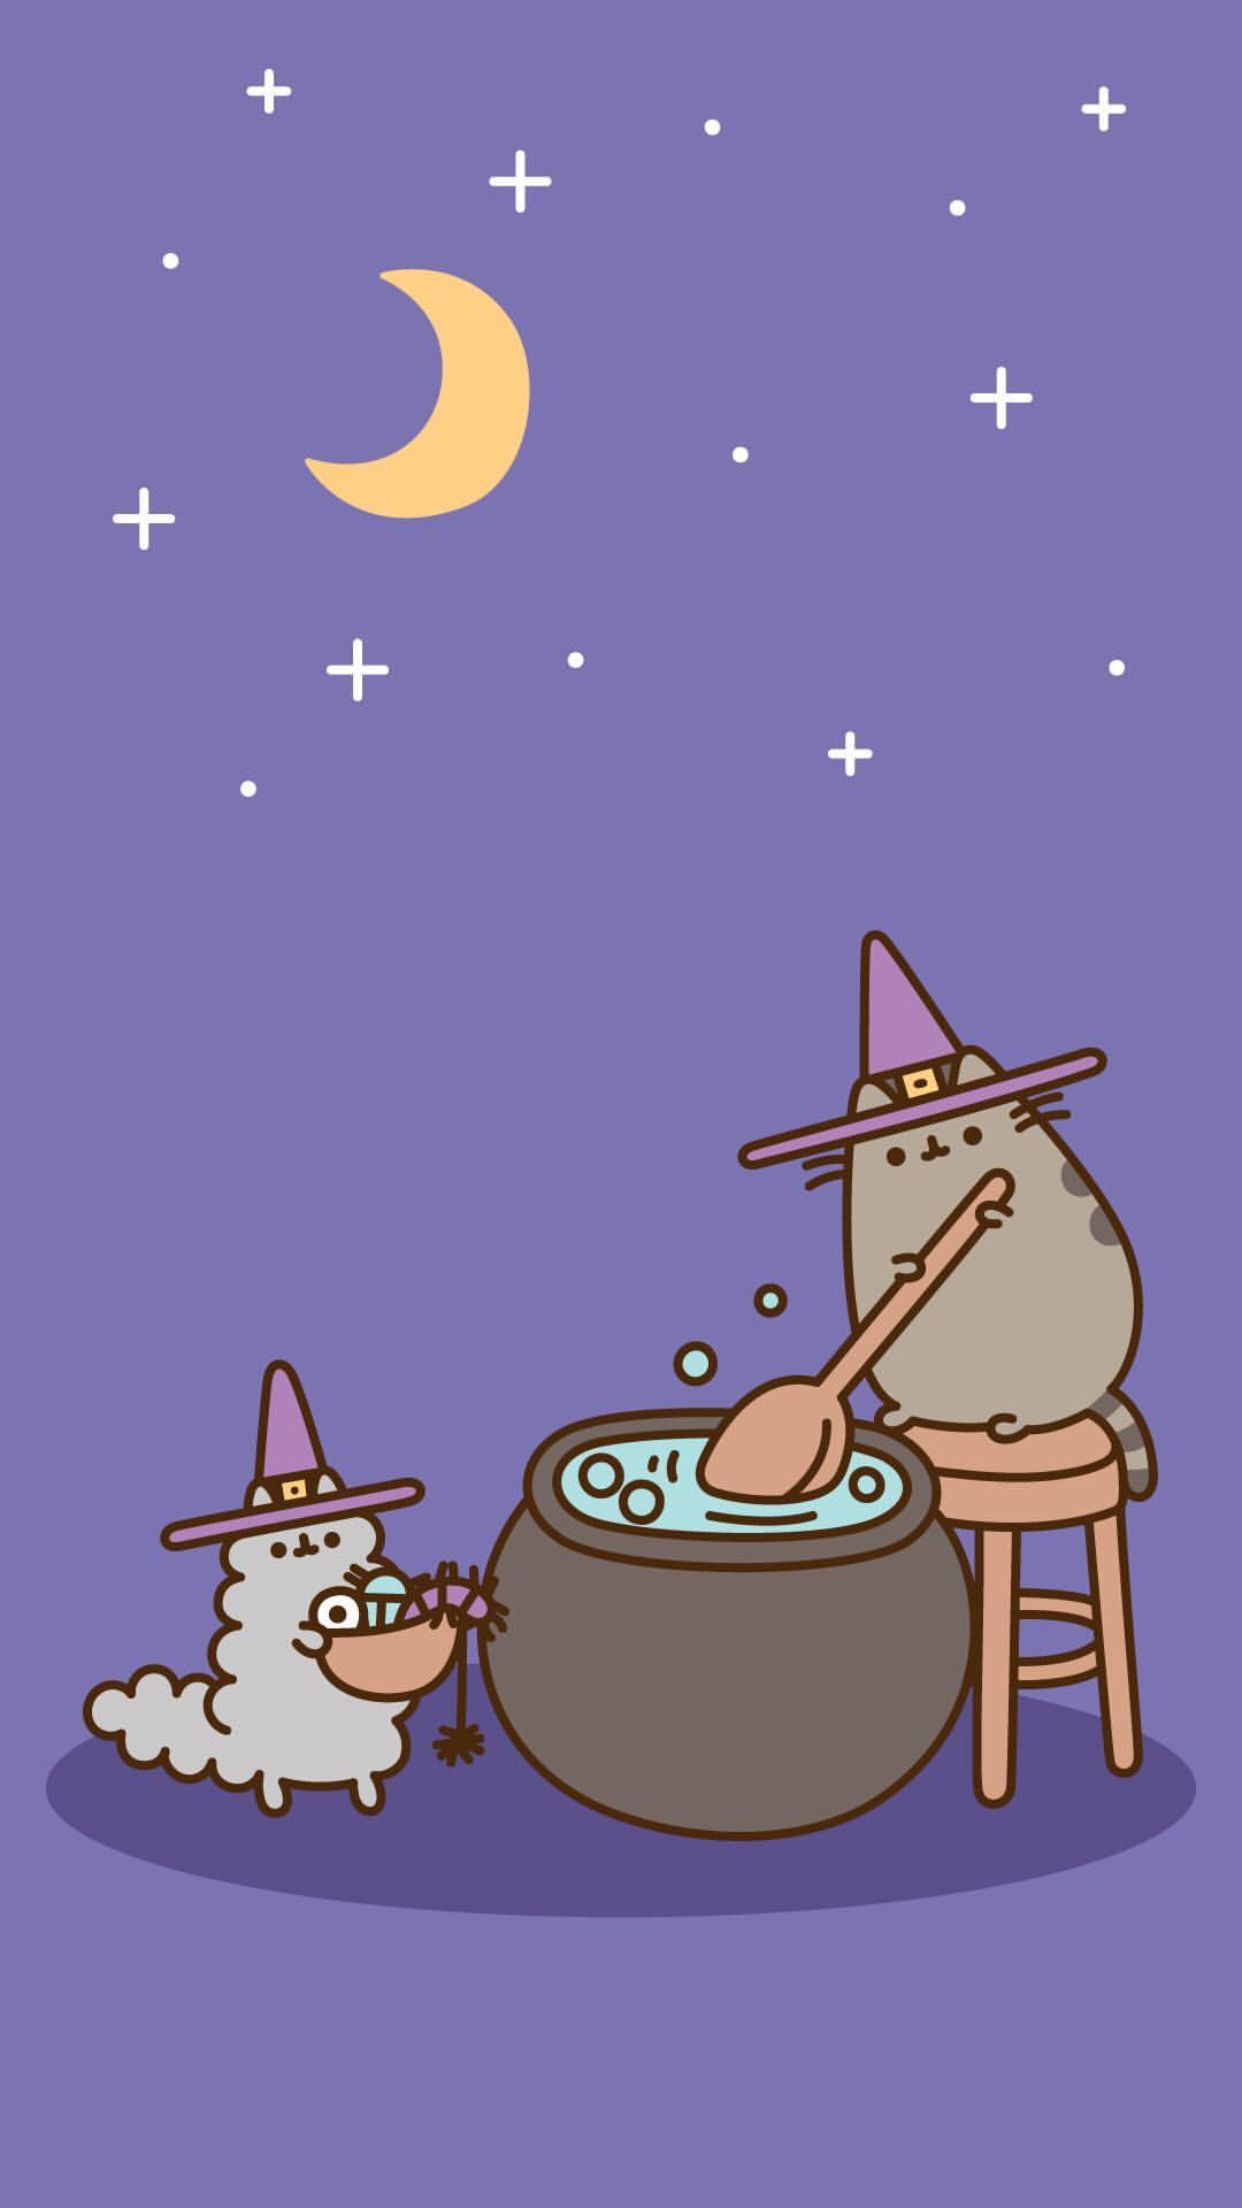 Pusheen Halloween Wallpaper Pusheen Cute Pusheen Cat Witch Wallpaper